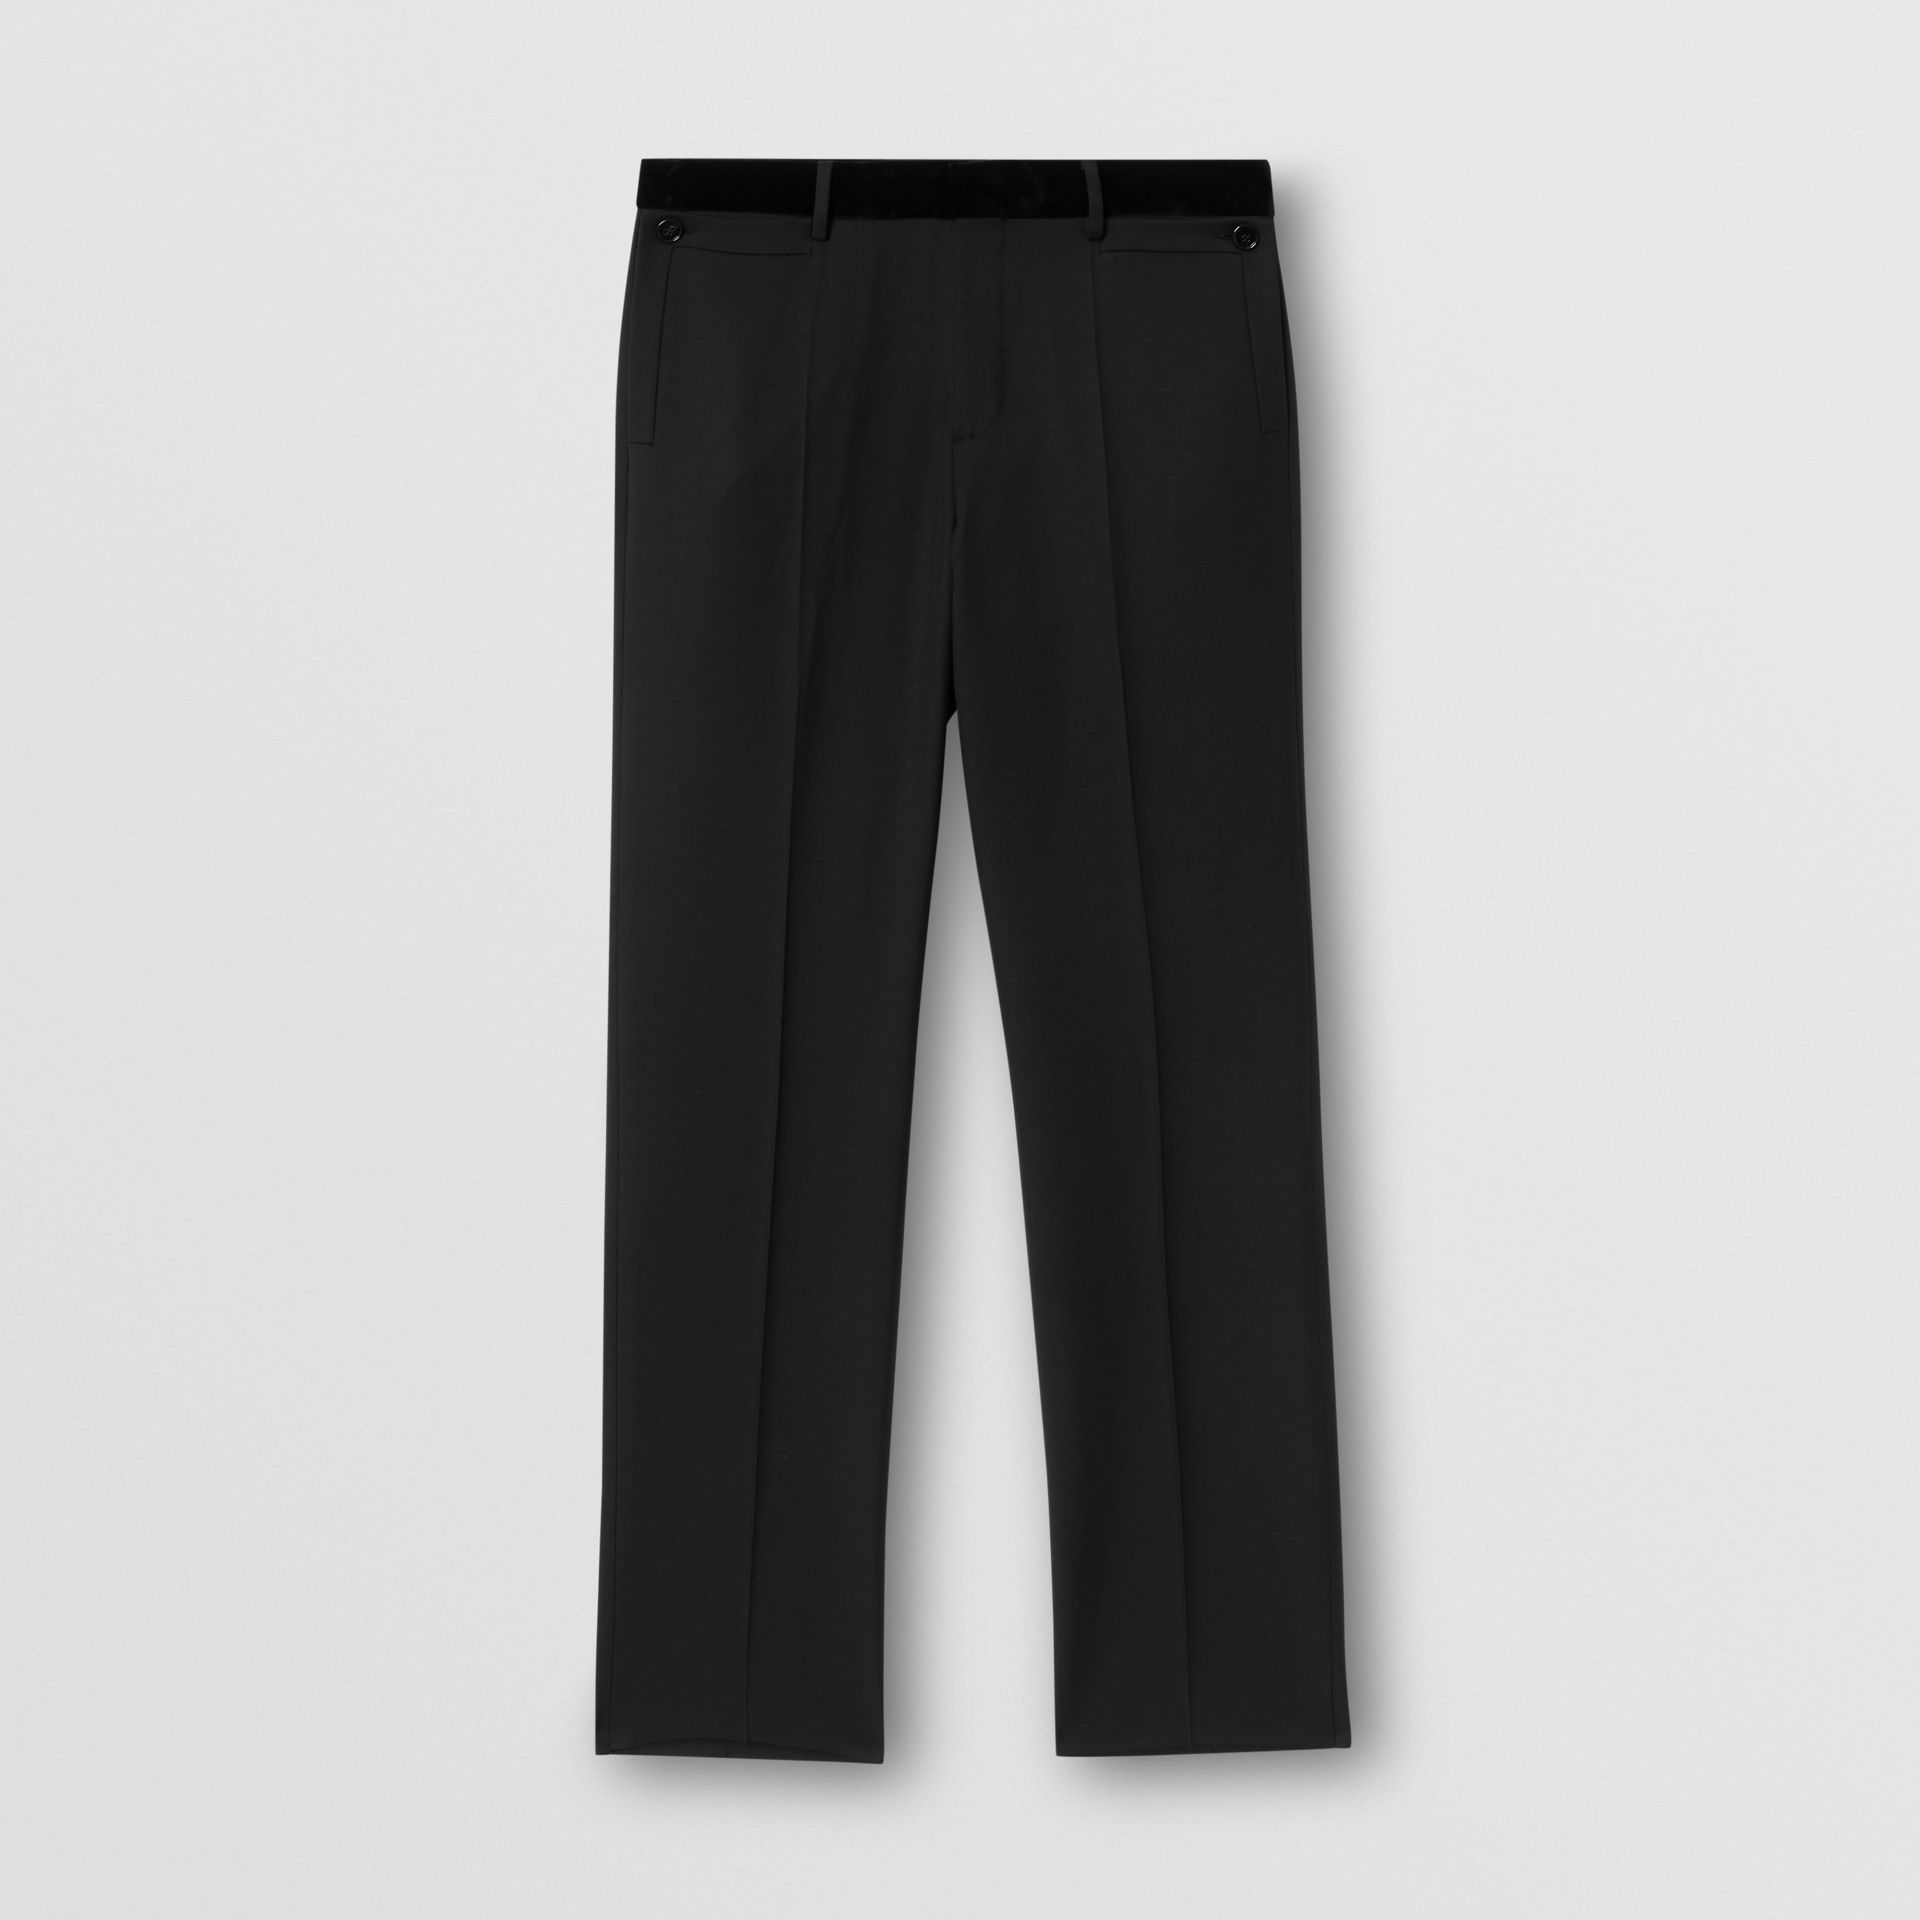 Velvet Trim Wool Tailored Trousers in Black - Men | Burberry United States - gallery image 3